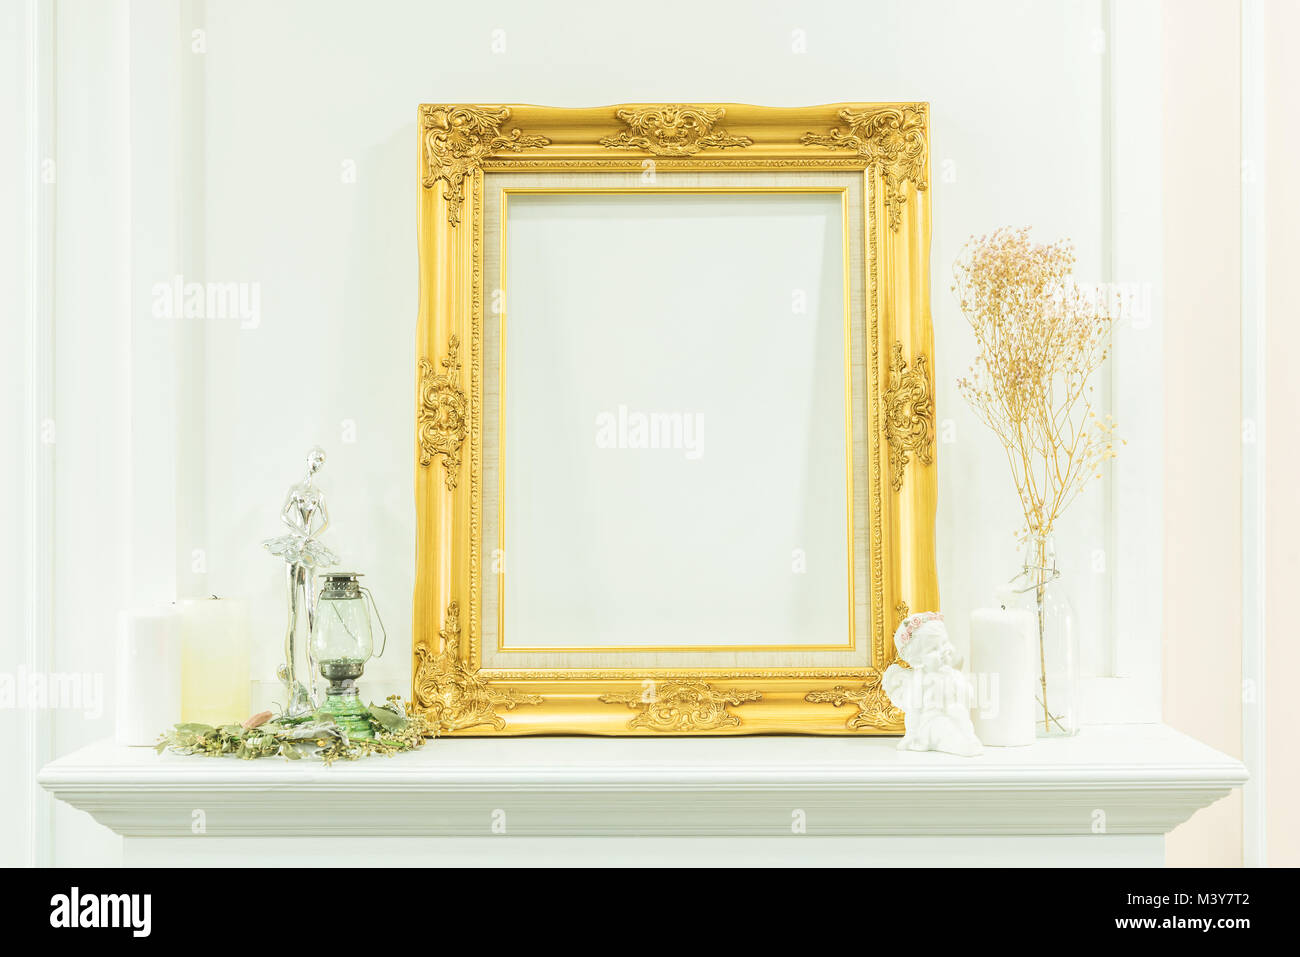 Vintage Decorative Frame Stock Photos & Vintage Decorative Frame ...